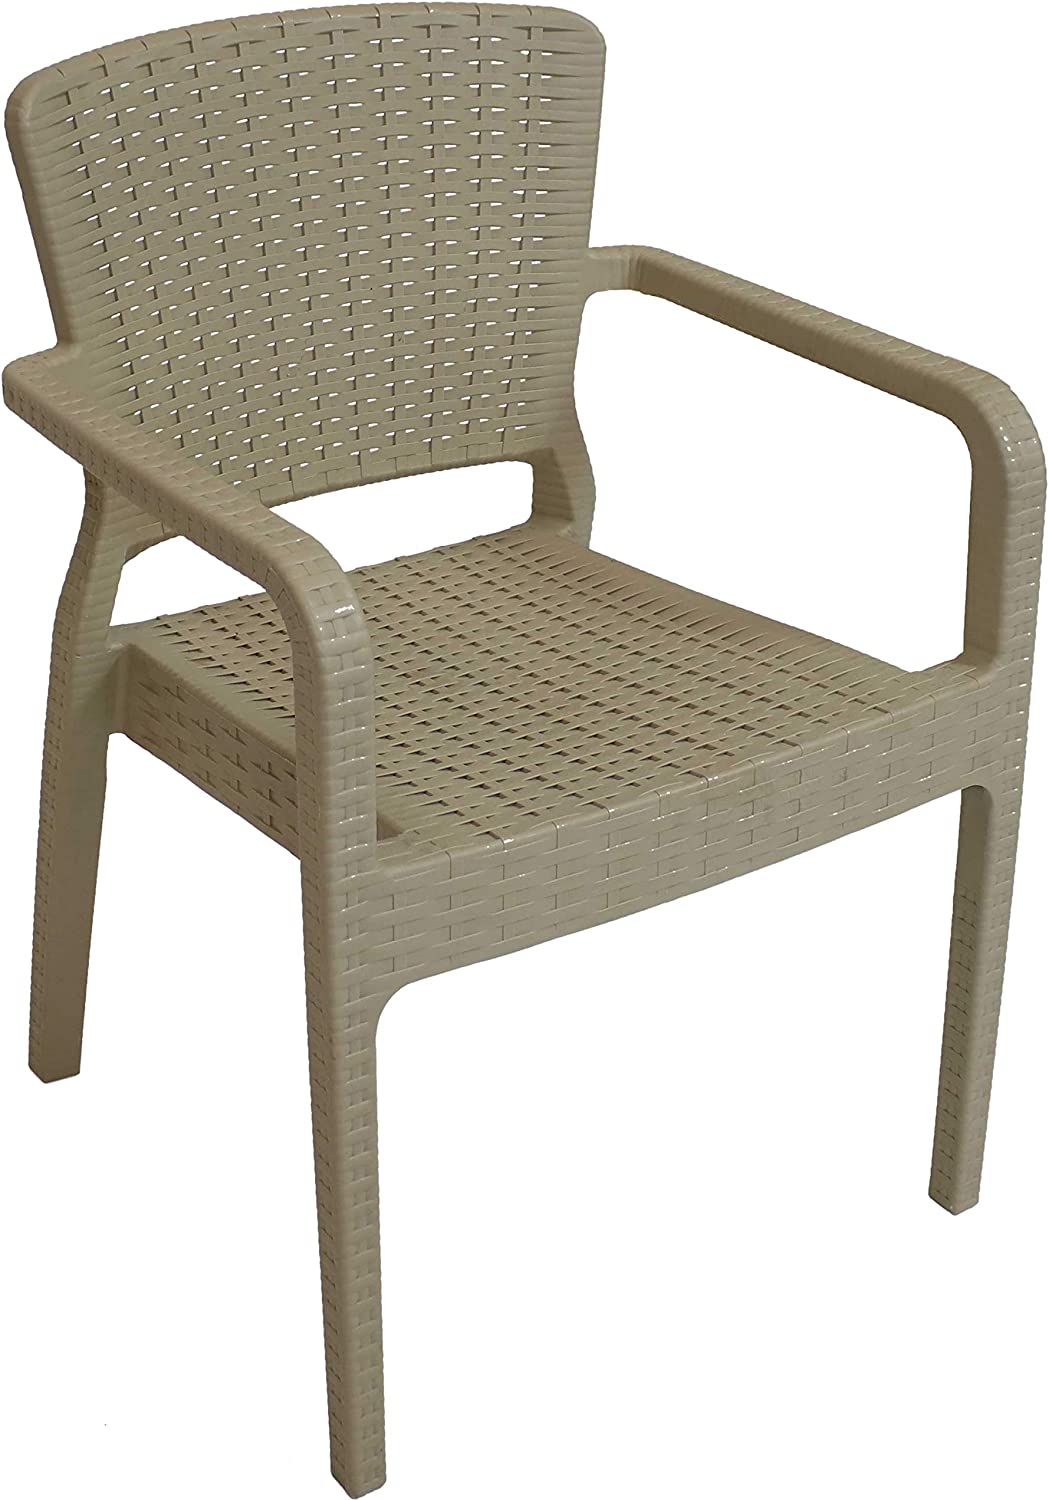 Sunnydaze Sale special price Segonia Plastic Outdoor Dining Complete Free Shipping Rat - Wicker Faux Chair